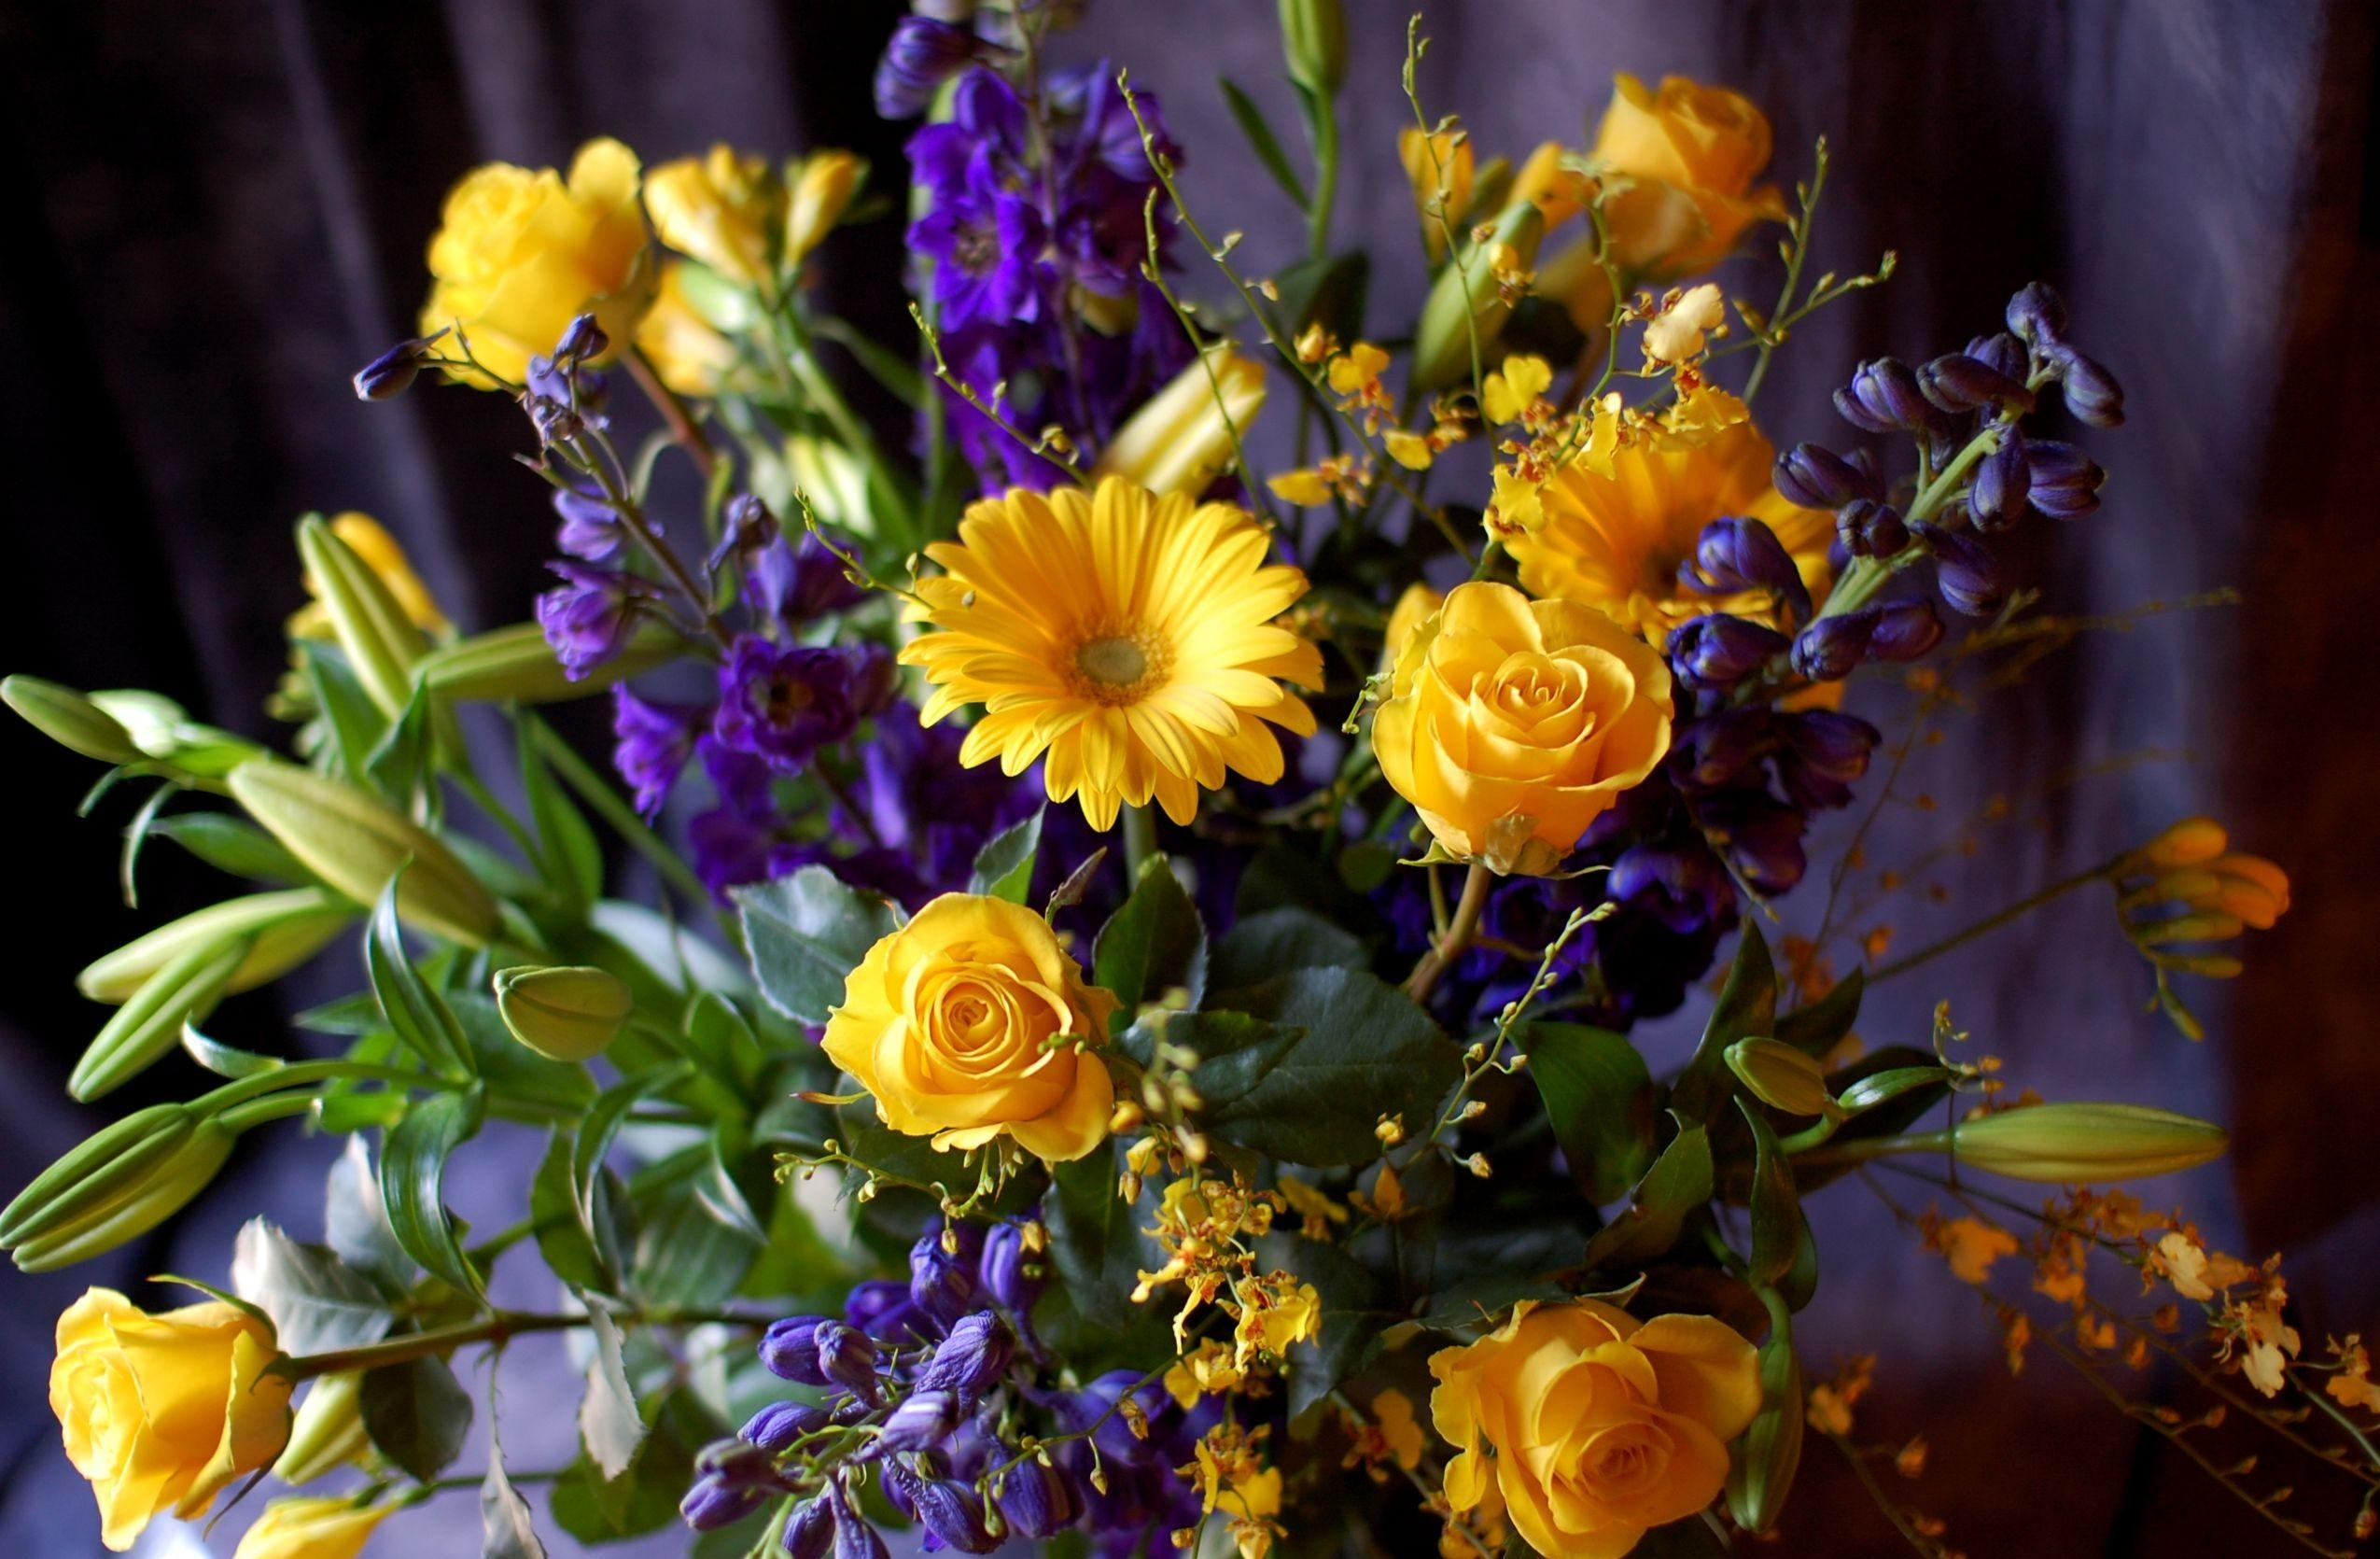 136902 download wallpaper Flowers, Freesia, Lilies, Buds, Bouquet, Composition, Roses, Gerberas screensavers and pictures for free